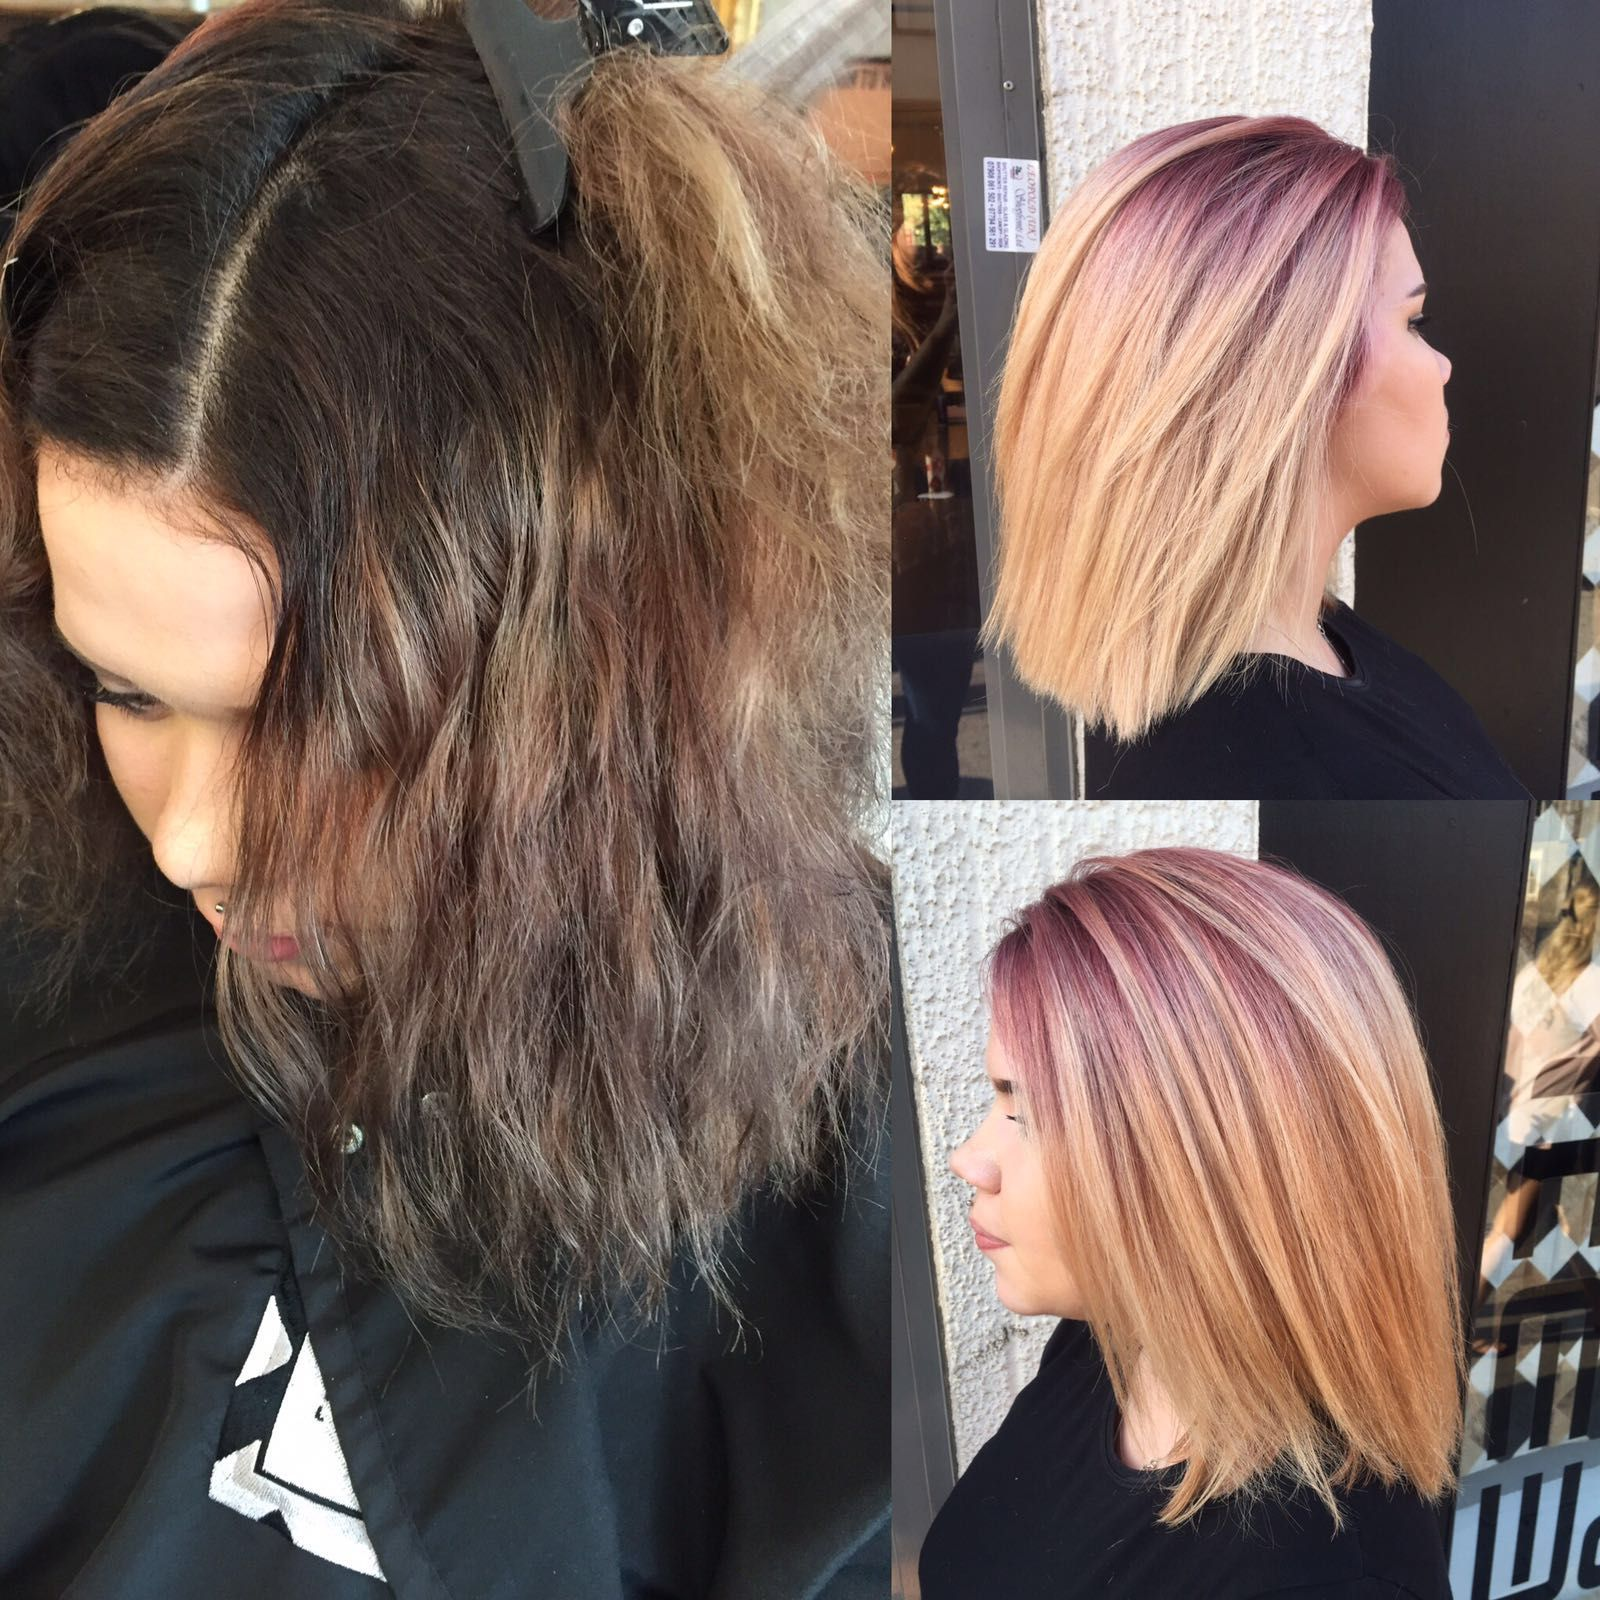 Hair Colour Correction London Hairdresser For More Hairstyles And Our List Of Hair Services Visit Www London Hair Salon Color Correction Hair Best Hair Salon